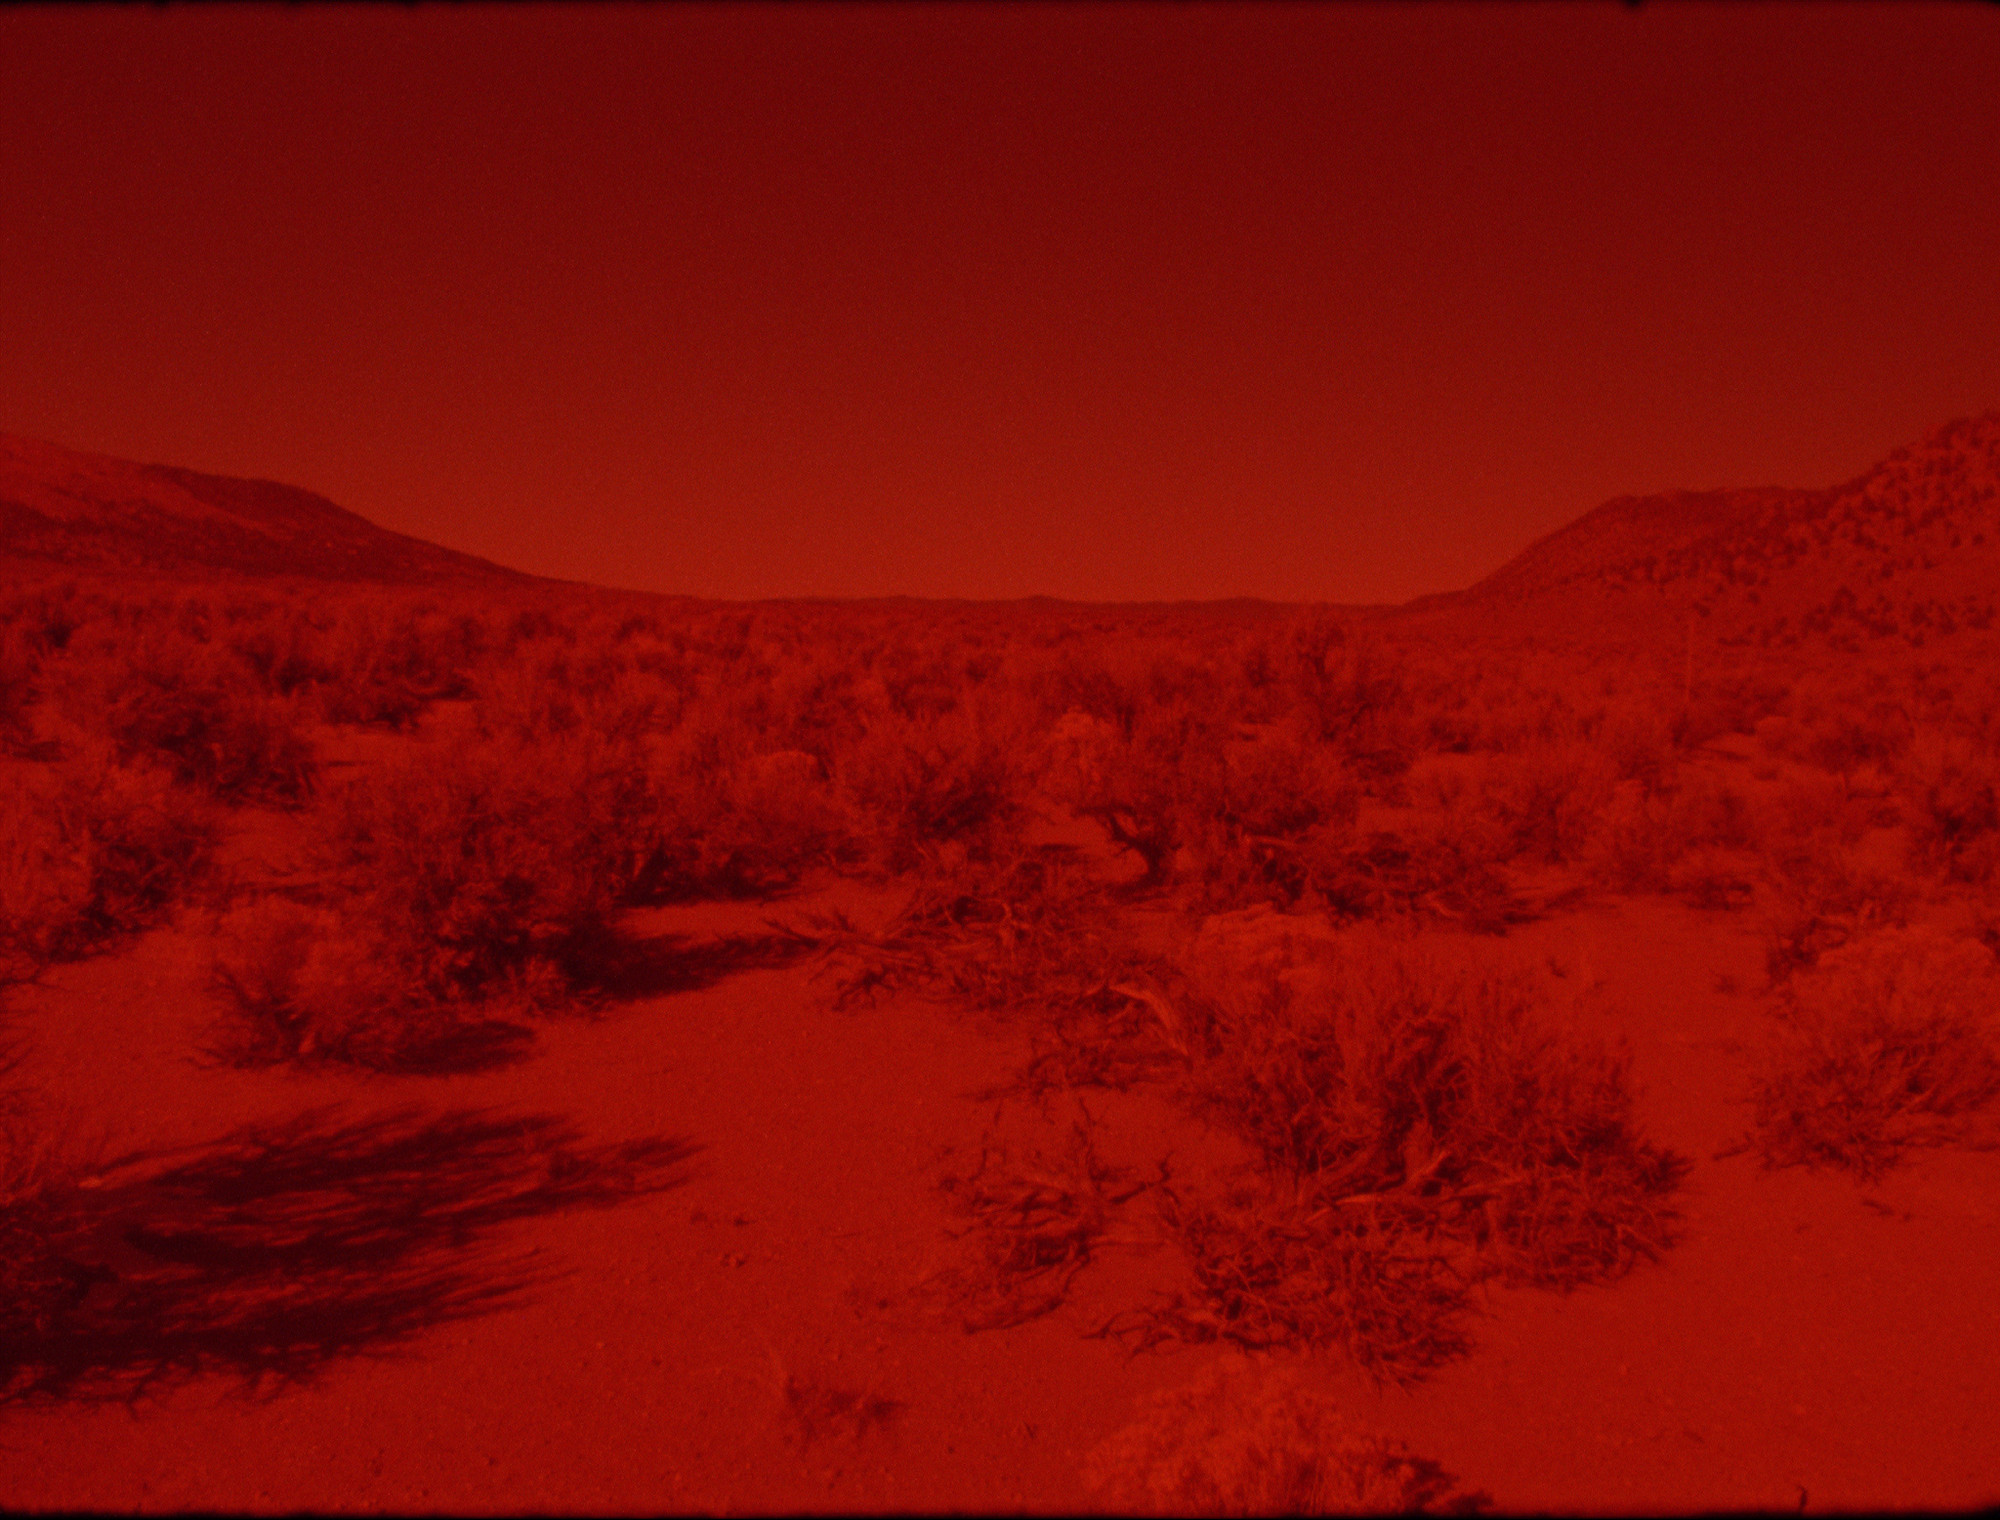 025 Sunset Red. 2016. Directed by Laida Lertxundi